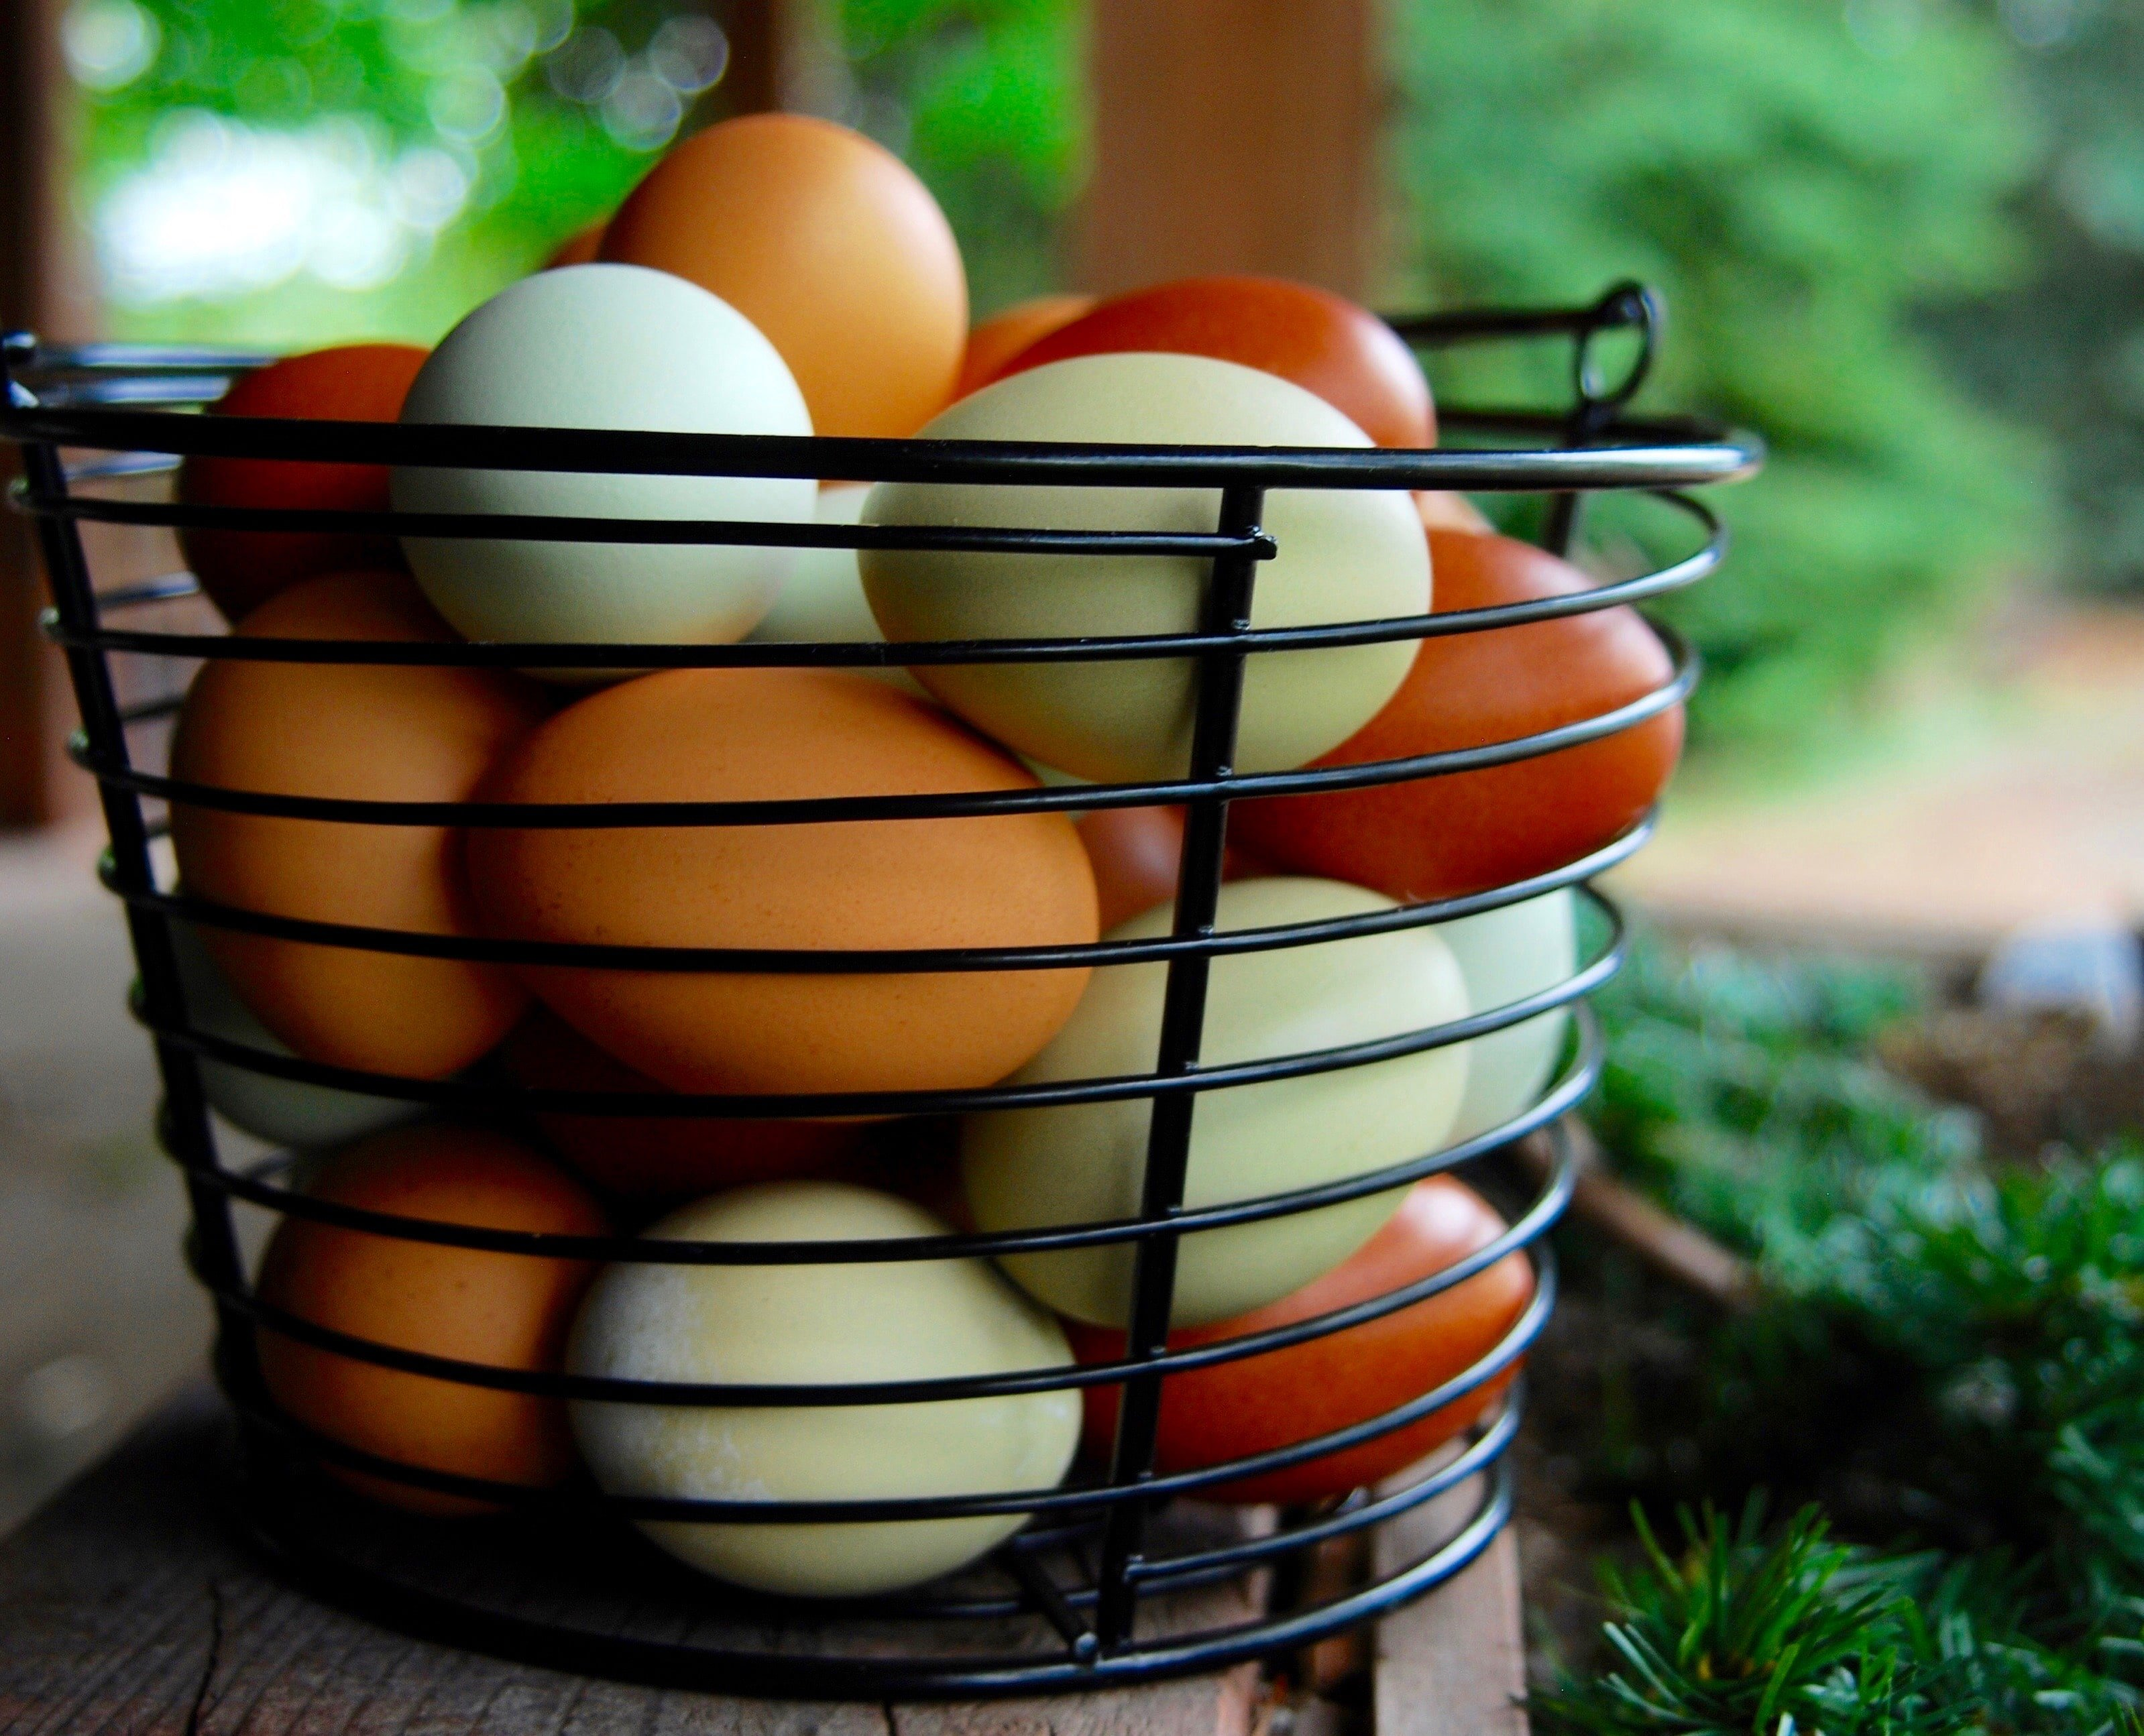 Basket full of colorful eggs.